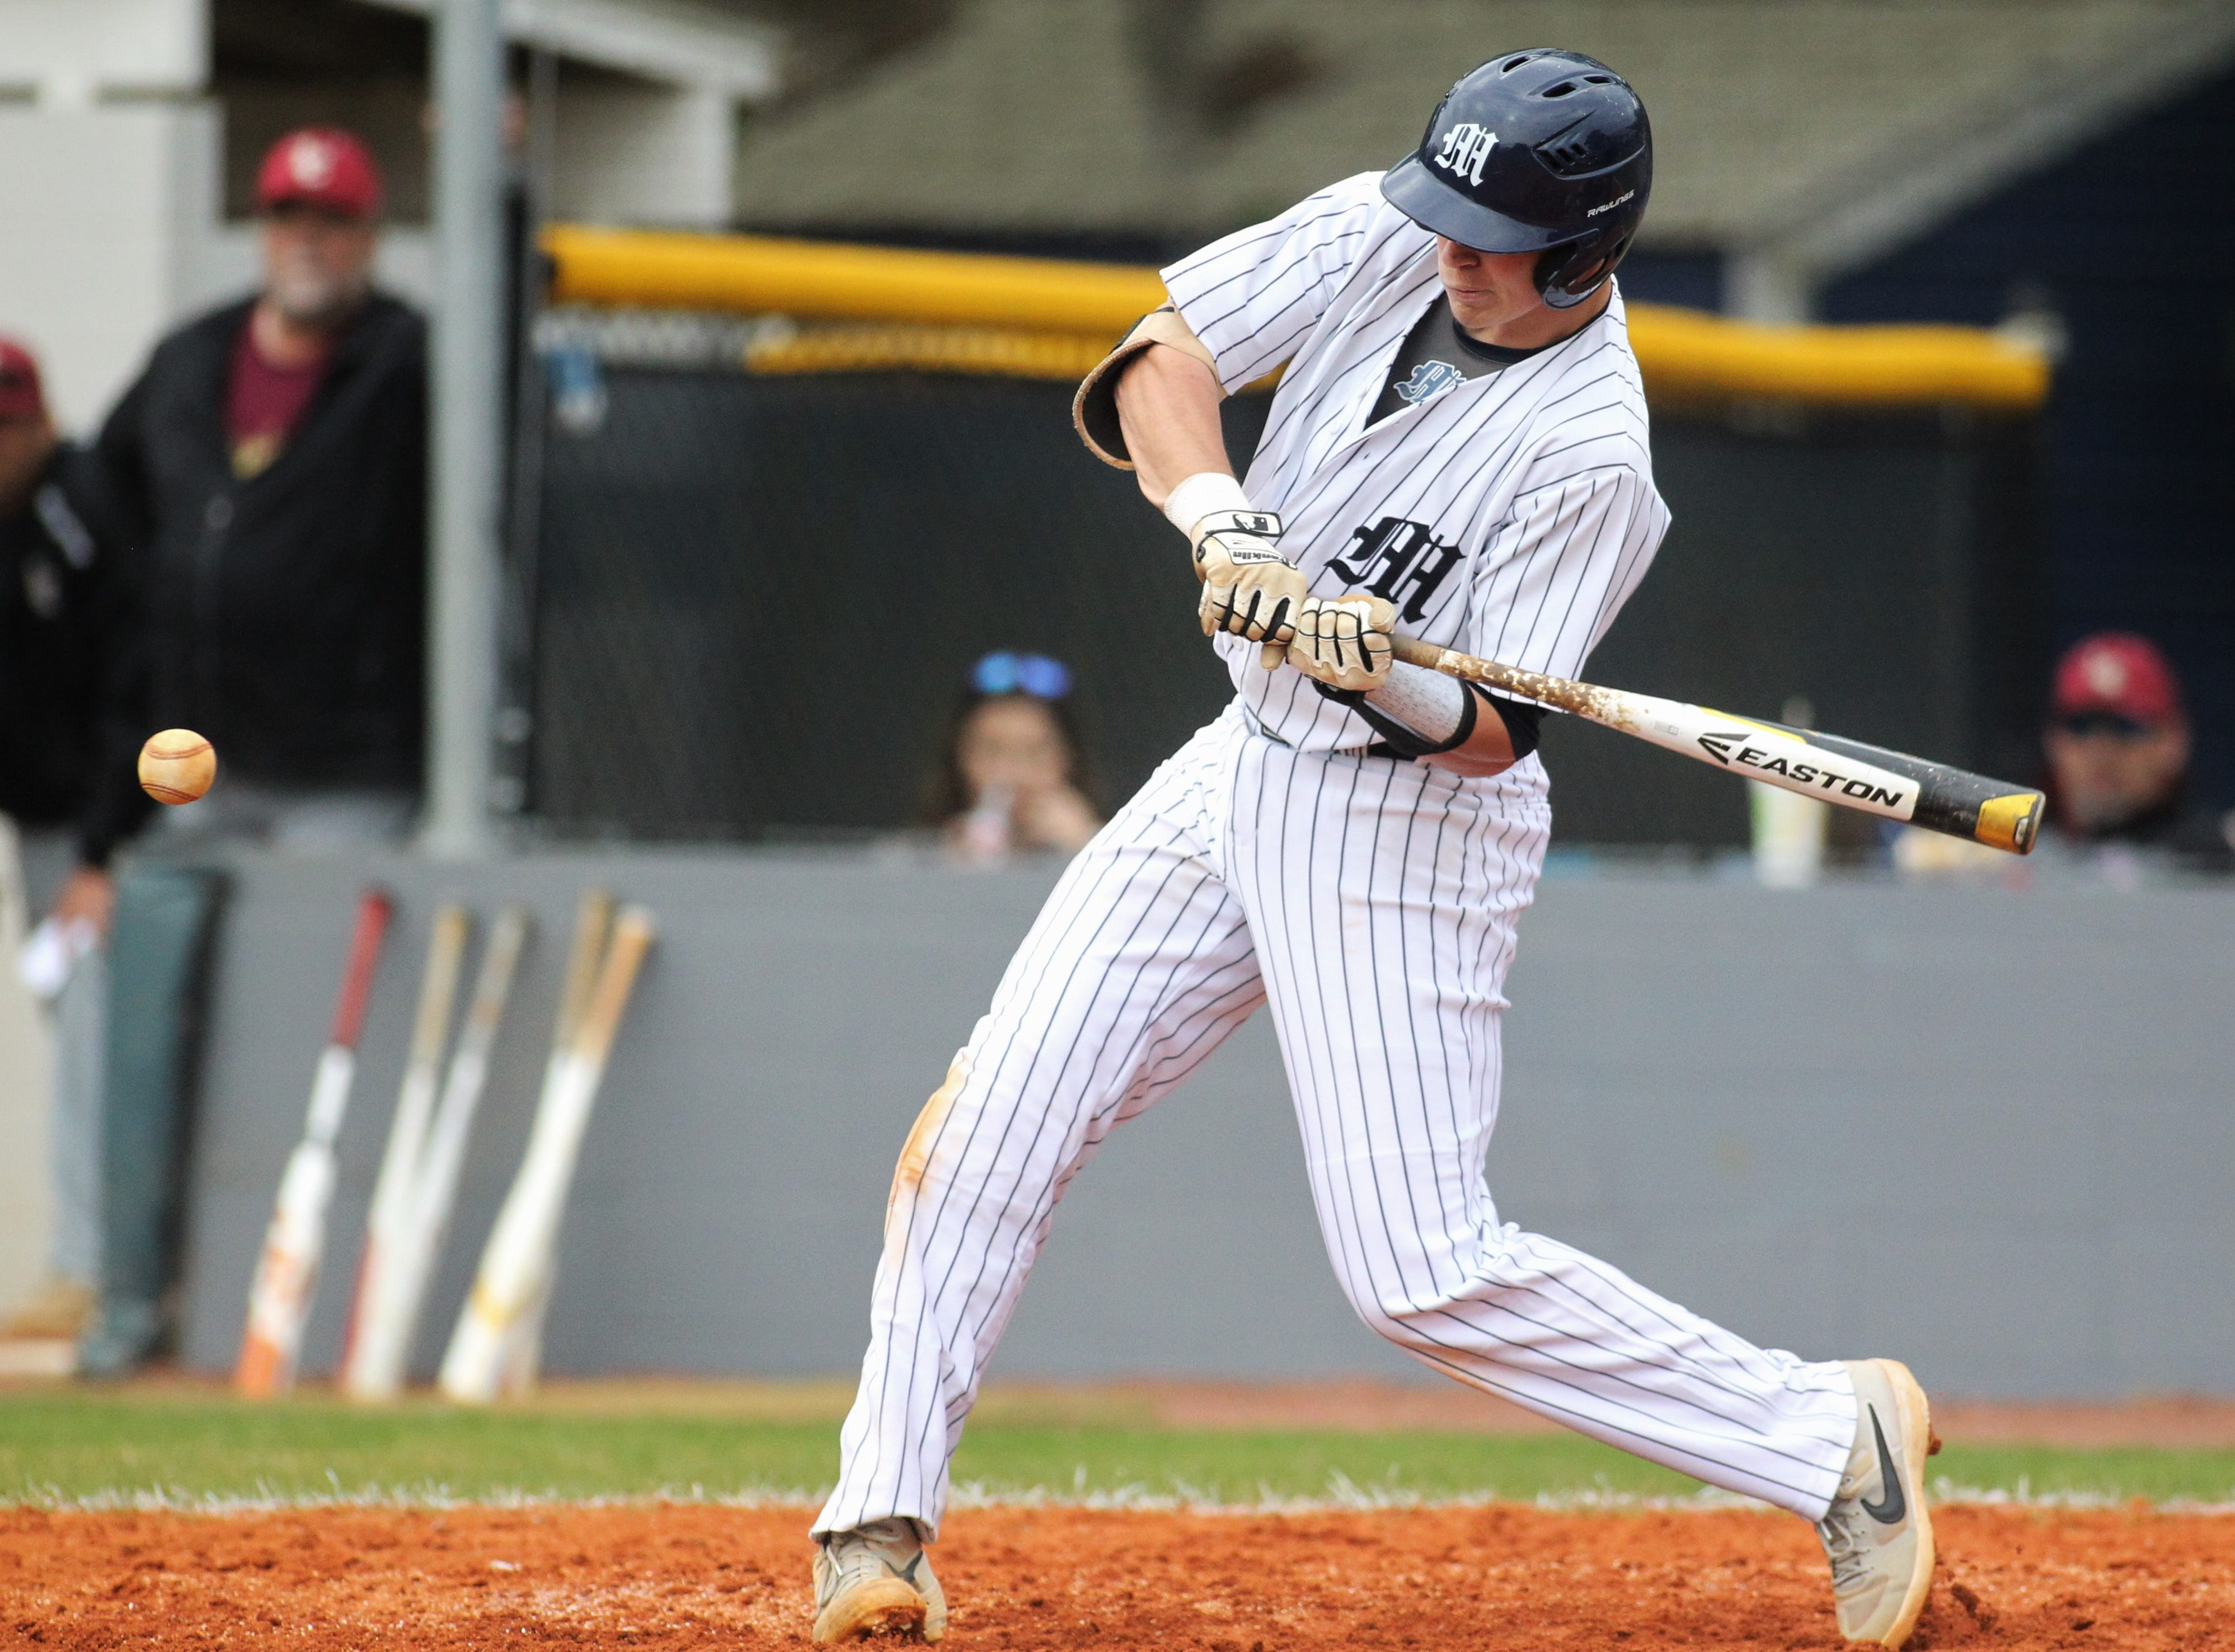 Maclay senior Jason Norris bats as Liberty County's baseball team went on the road to beat Maclay 8-2 on Saturday, March 16, 2019. The Bulldogs played their first game following their head coach Corey Crum's tragic death six days ago.